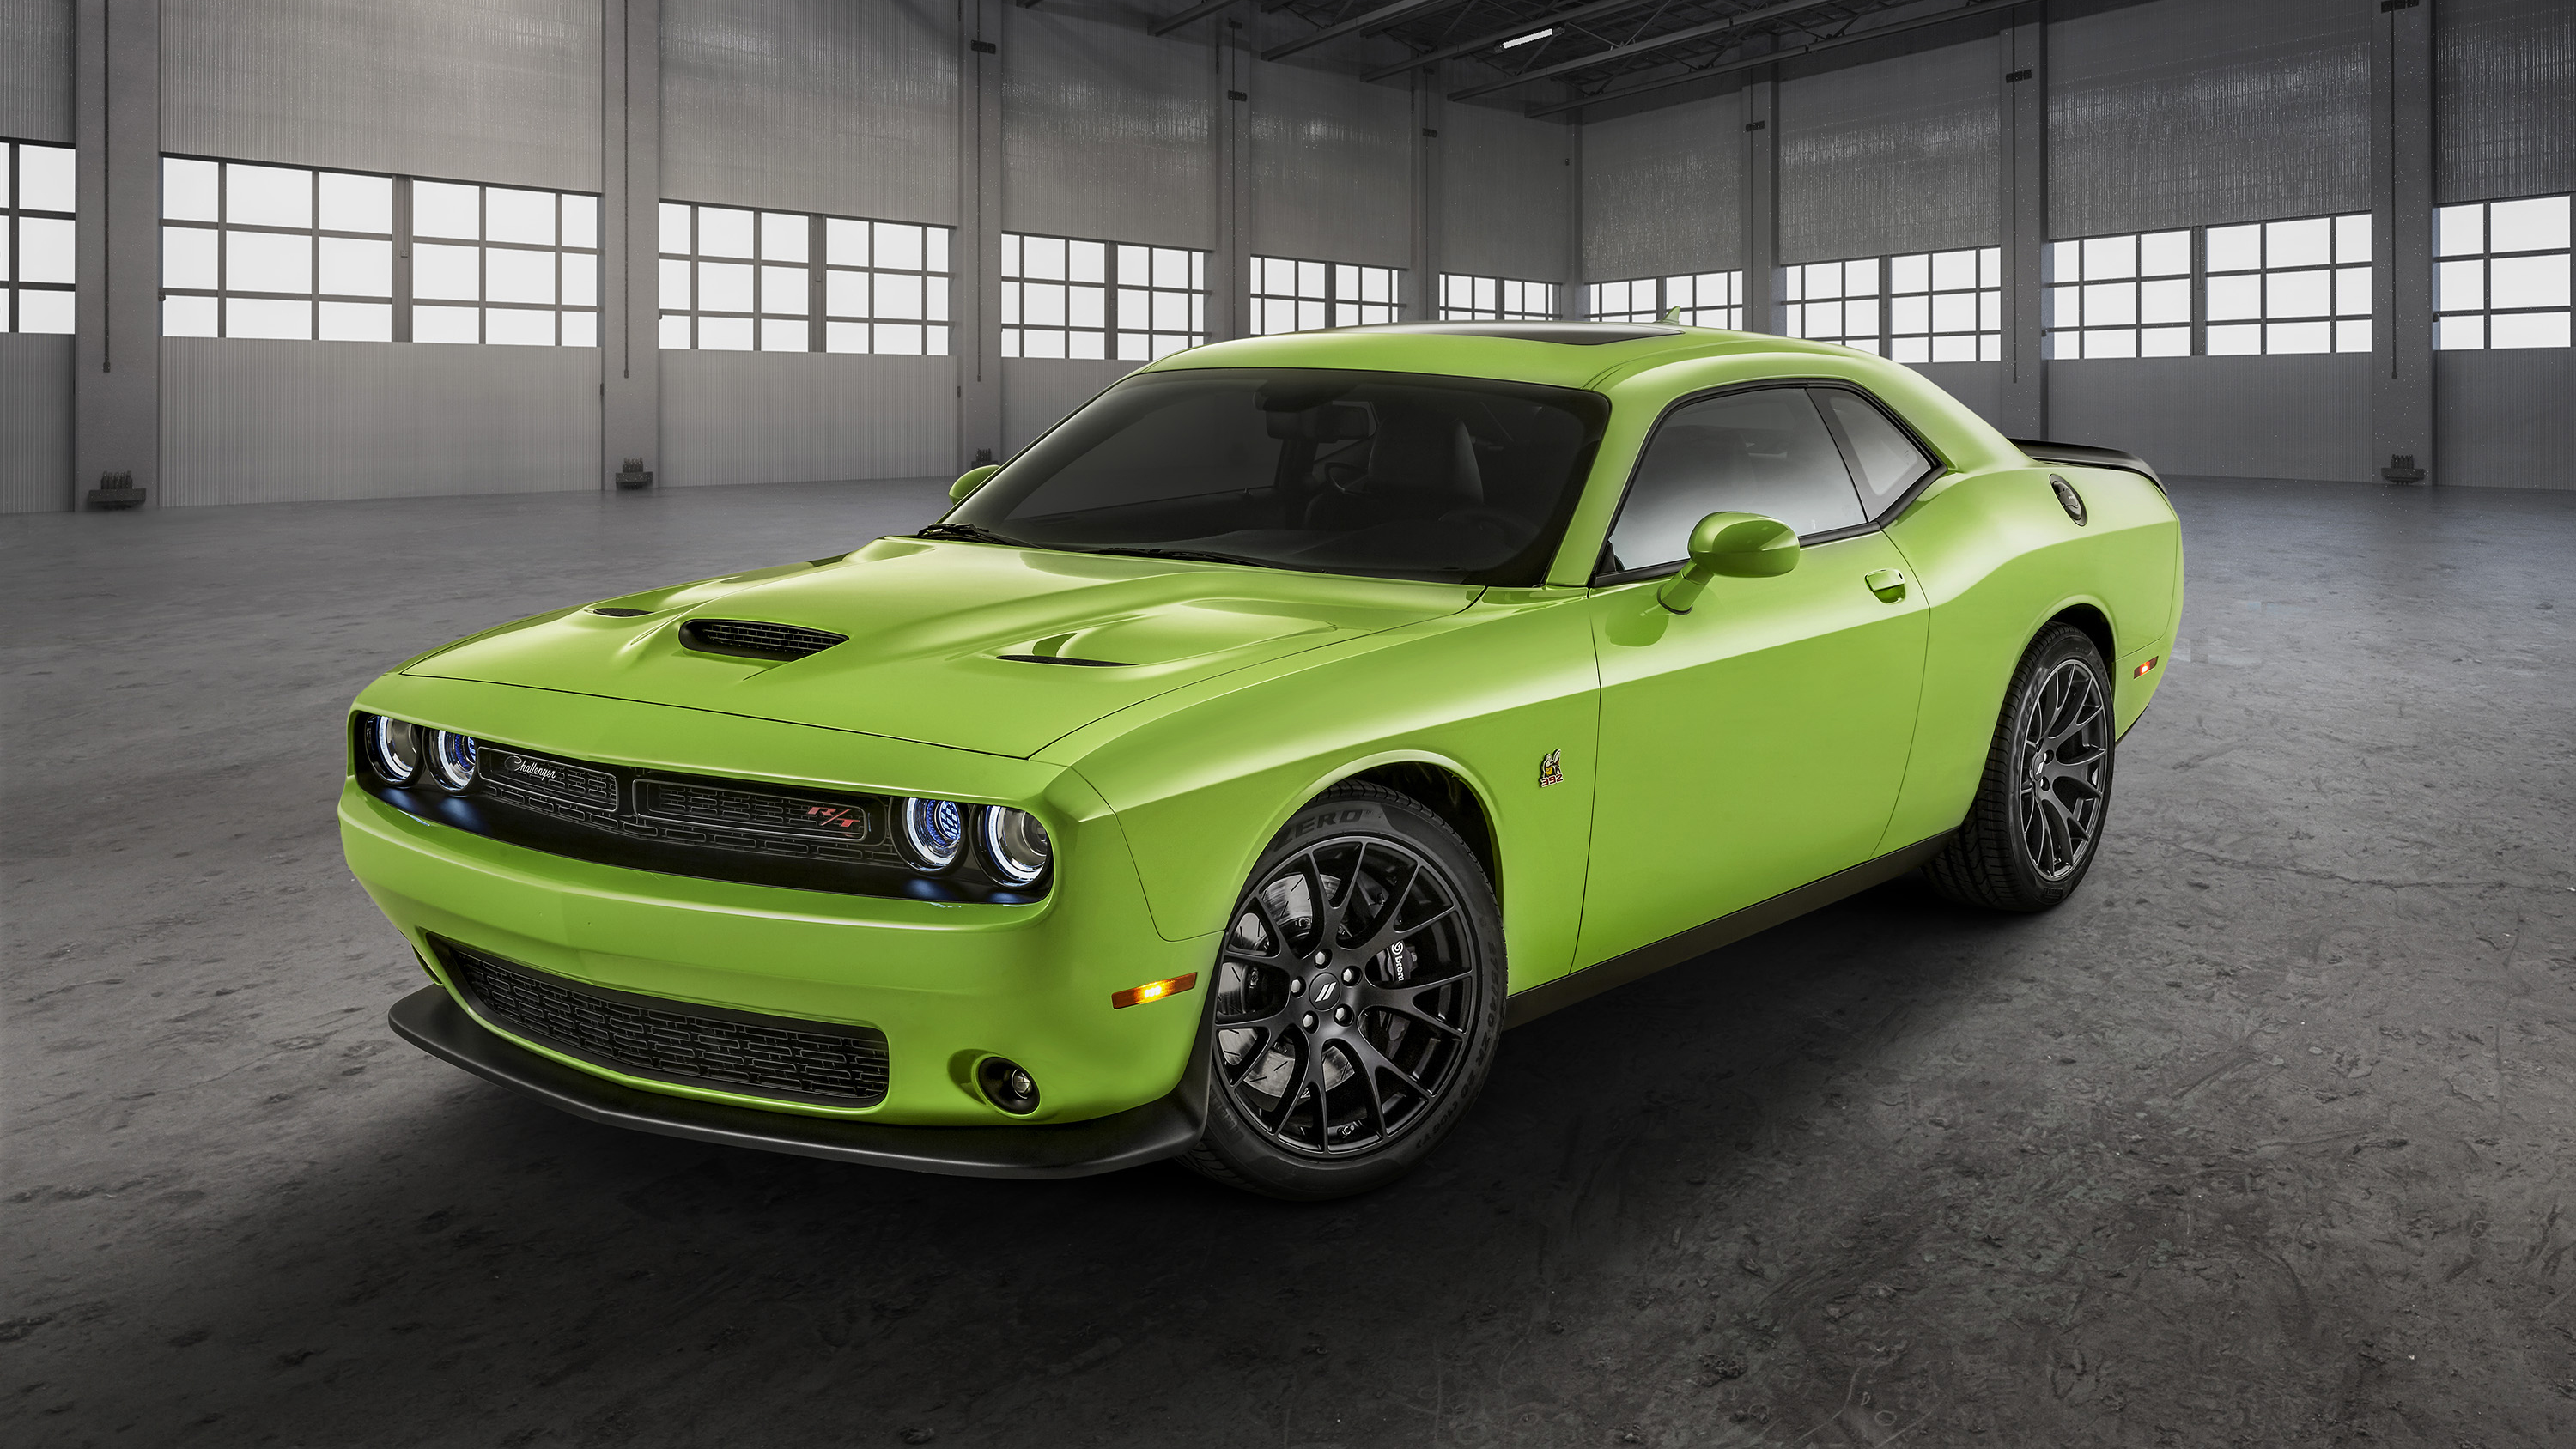 2019 Dodge Challenger Rt Scat Pack Wallpaper Hd Car Wallpapers Id 12005